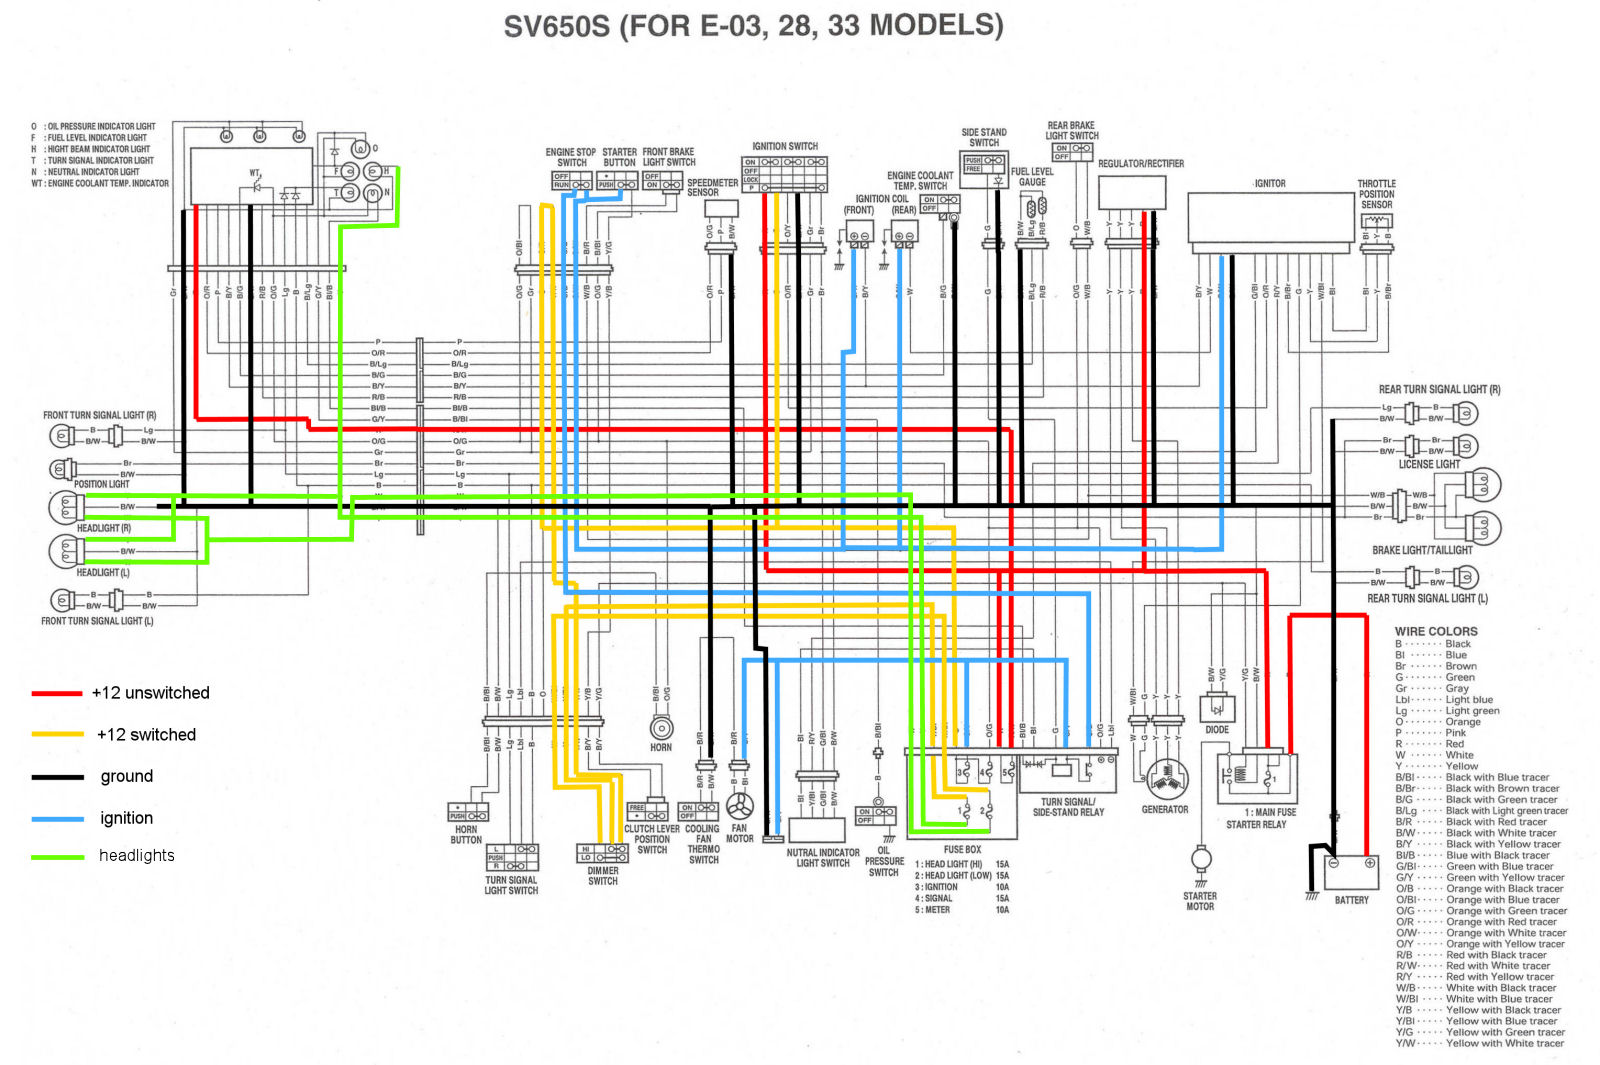 1999 sv650 wiring diagram electrical diagrams forum u2022 rh jimmellon co uk